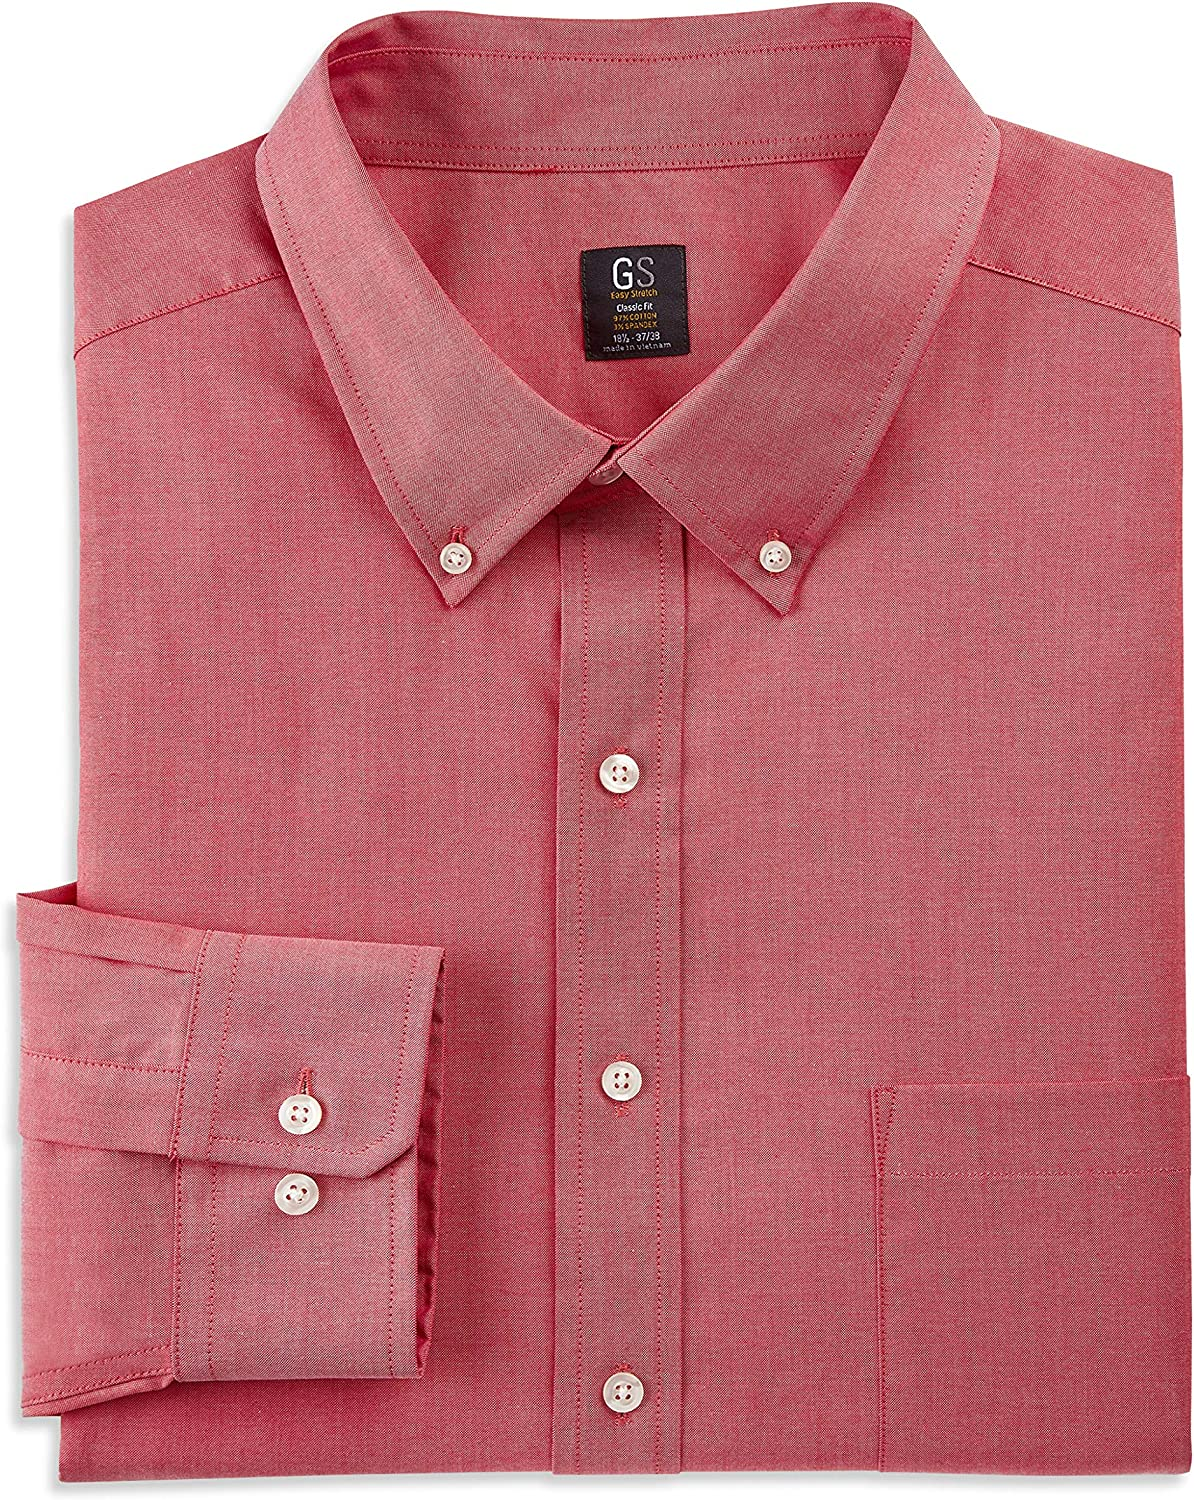 DXL Gold Series Big and Tall Oxford Easy Stretch Dress Shirt, Red